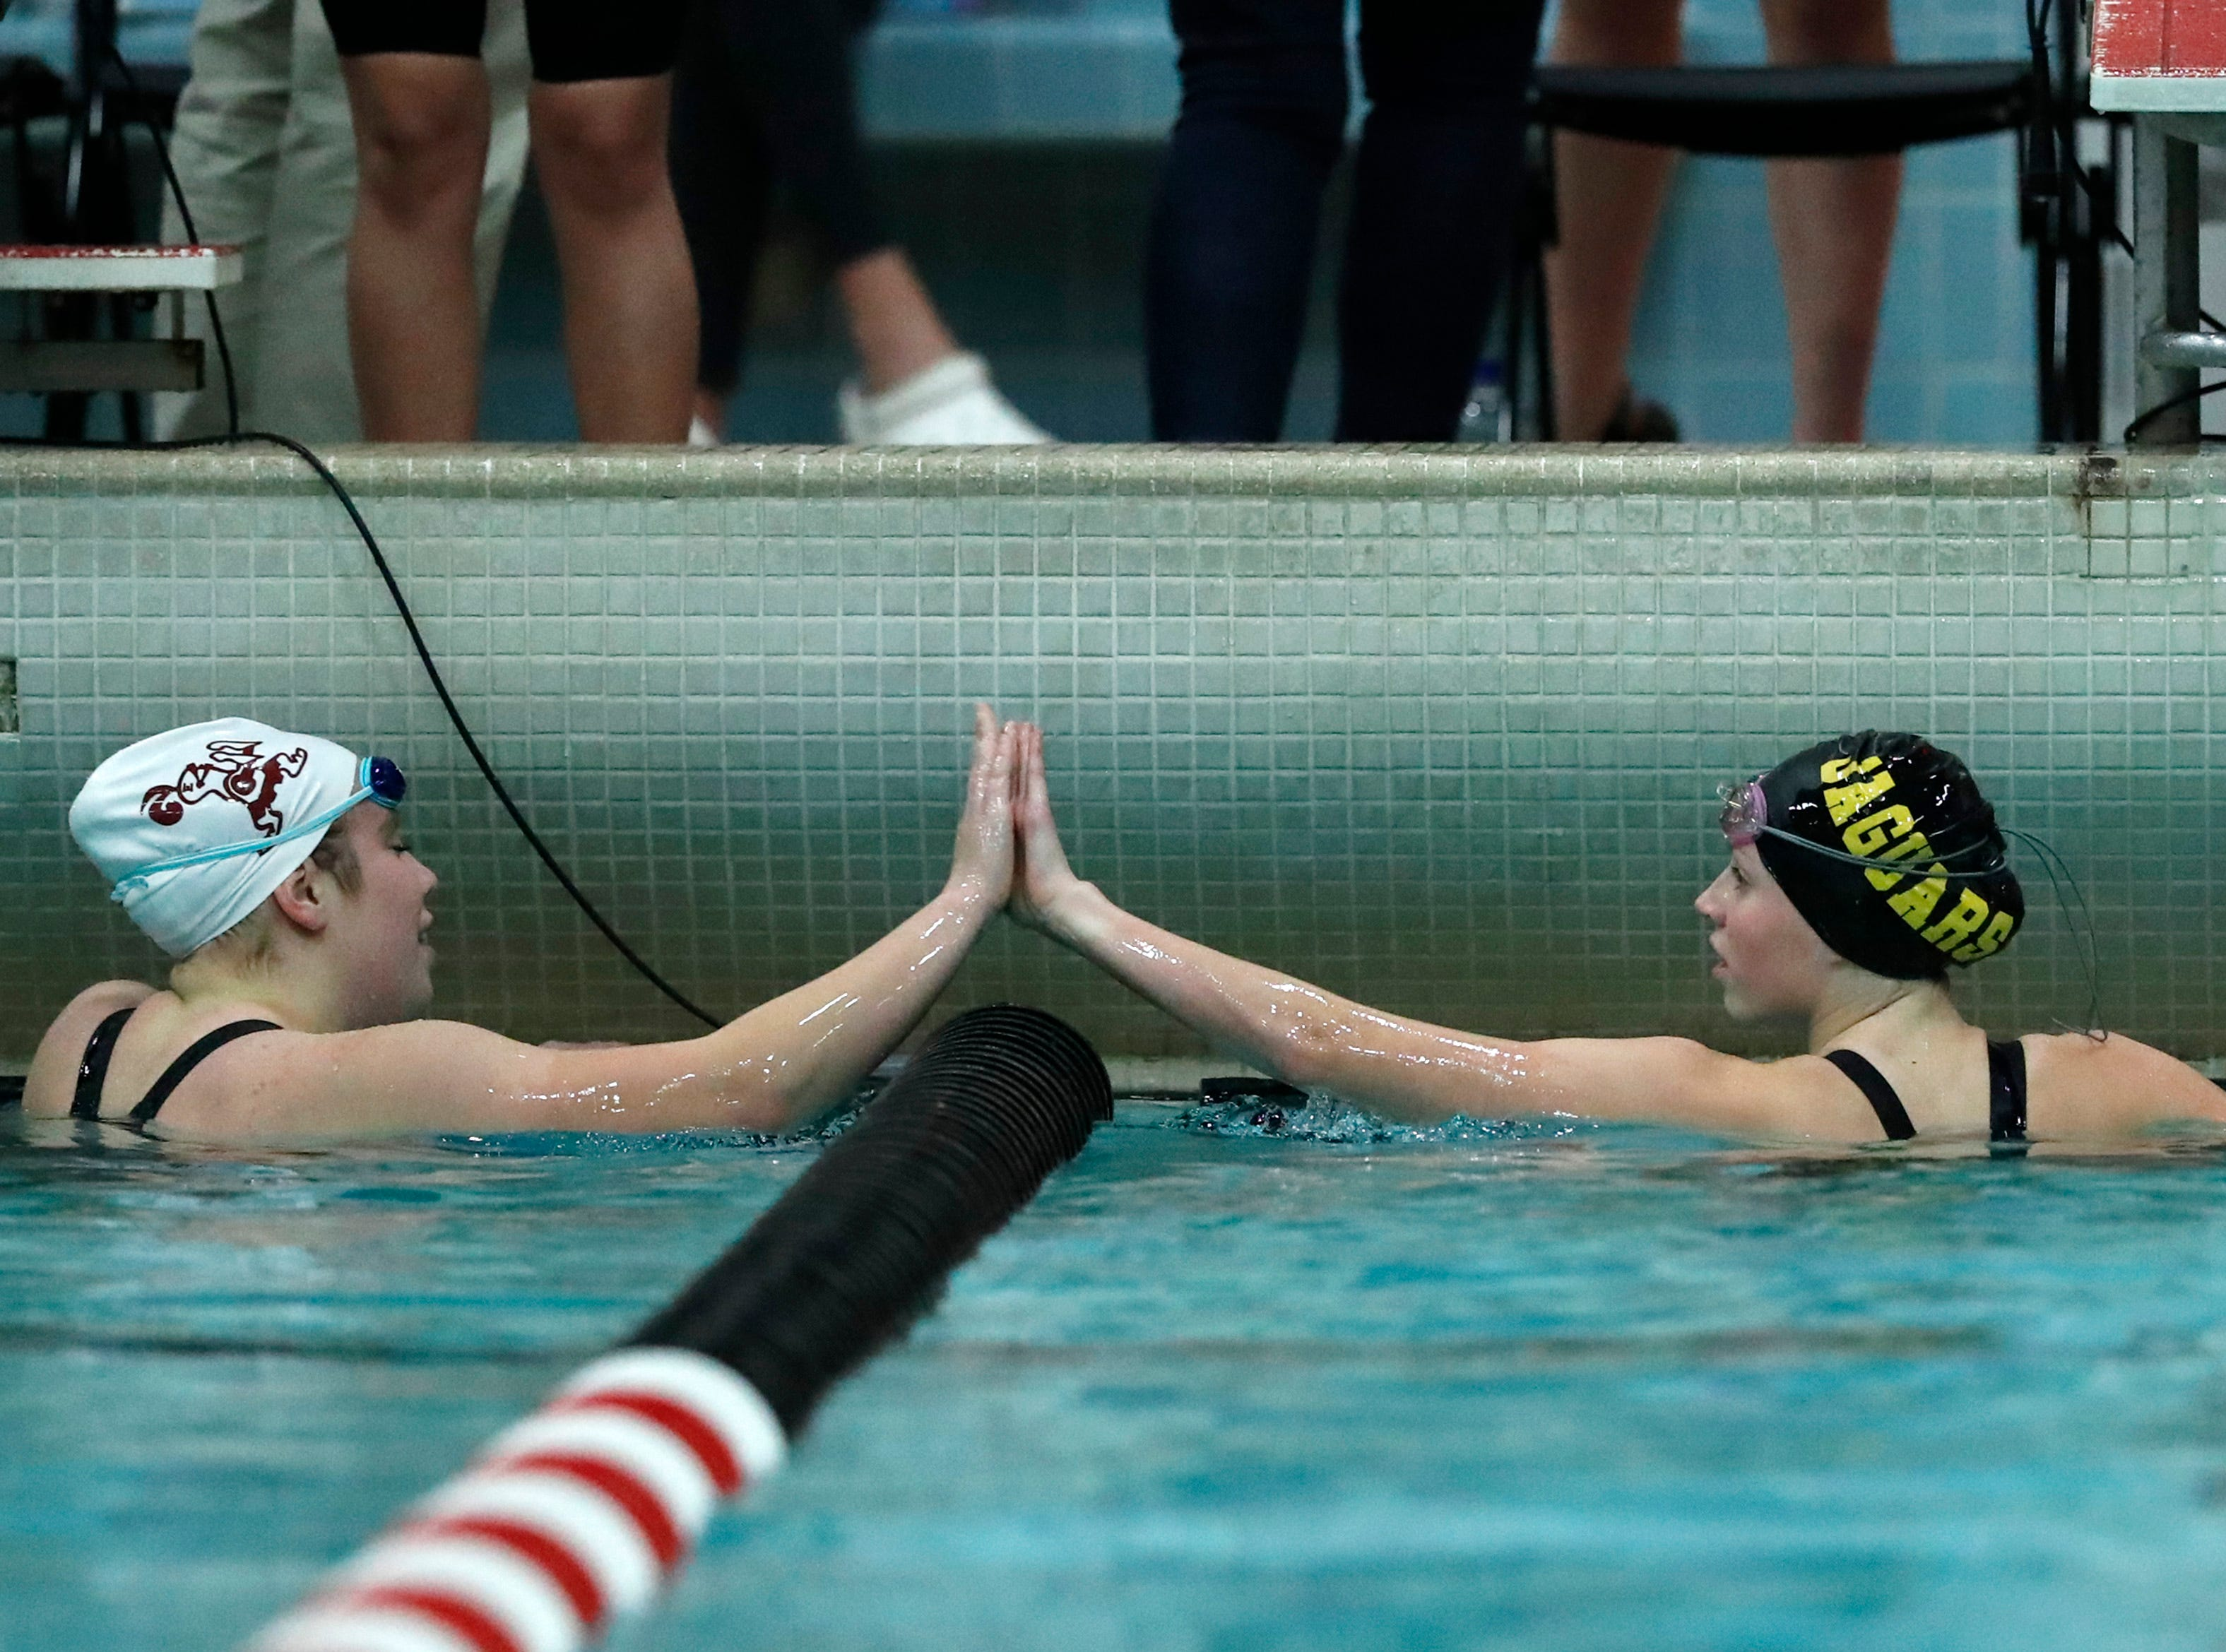 Edgewood's Mallory Todd high fives Ashwaubenon's Hallory Domnick after finishing the 100 yard butterfly during the WIAA Division 2 State Swimming and Diving meet Friday, Nov. 9, 2018, at the UW Natatorium in Madison, Wis.Danny Damiani/USA TODAY NETWORK-Wisconsin